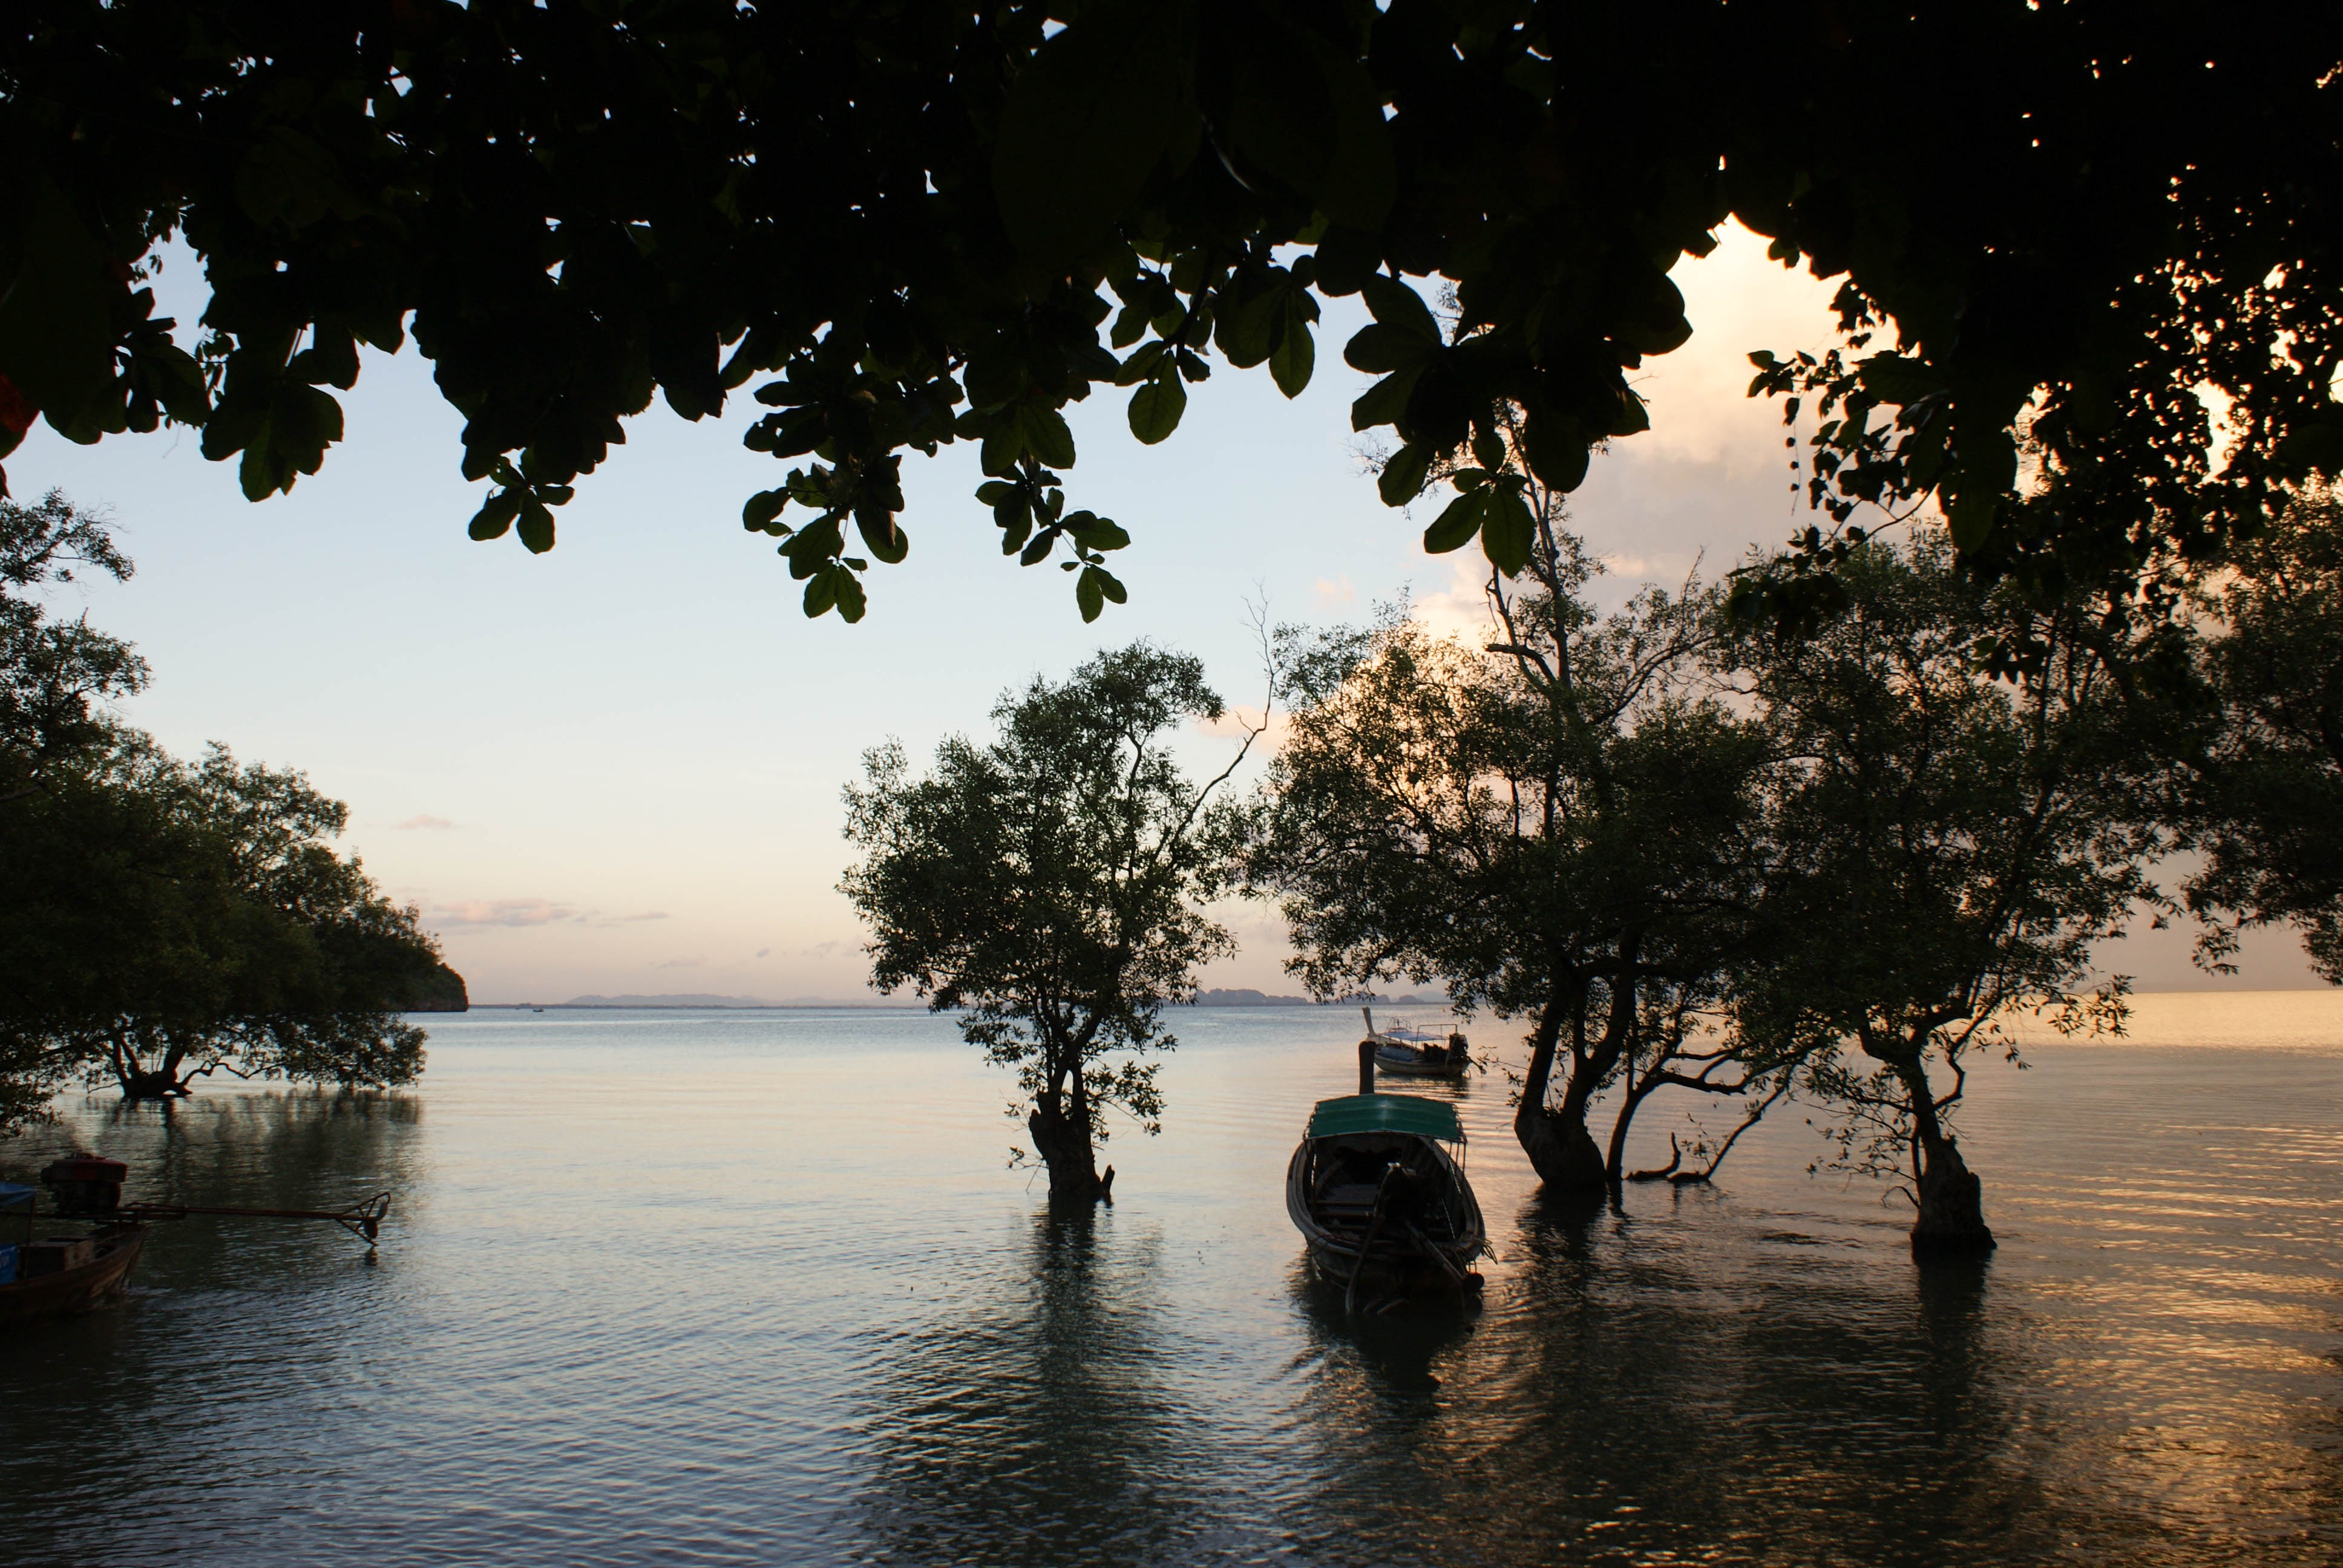 Postcards from Thailand: Railay, Krabi Photo Journal - billowing clouds and mangroves in Railay east